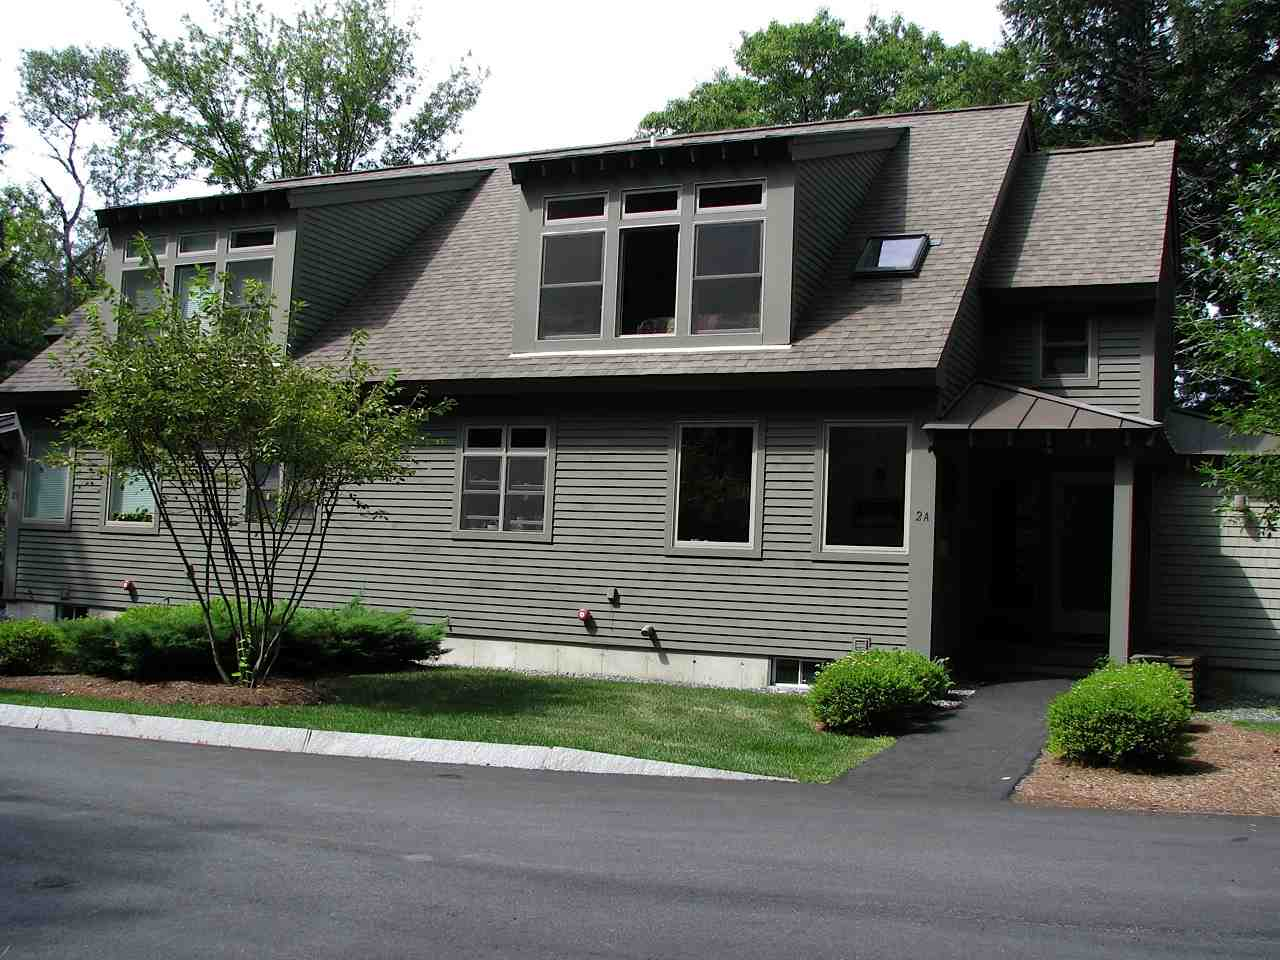 VILLAGE OF QUECHEE VT IN TOWN OF HARTFORD VT Condo for sale $$349,500 | $181 per sq.ft.